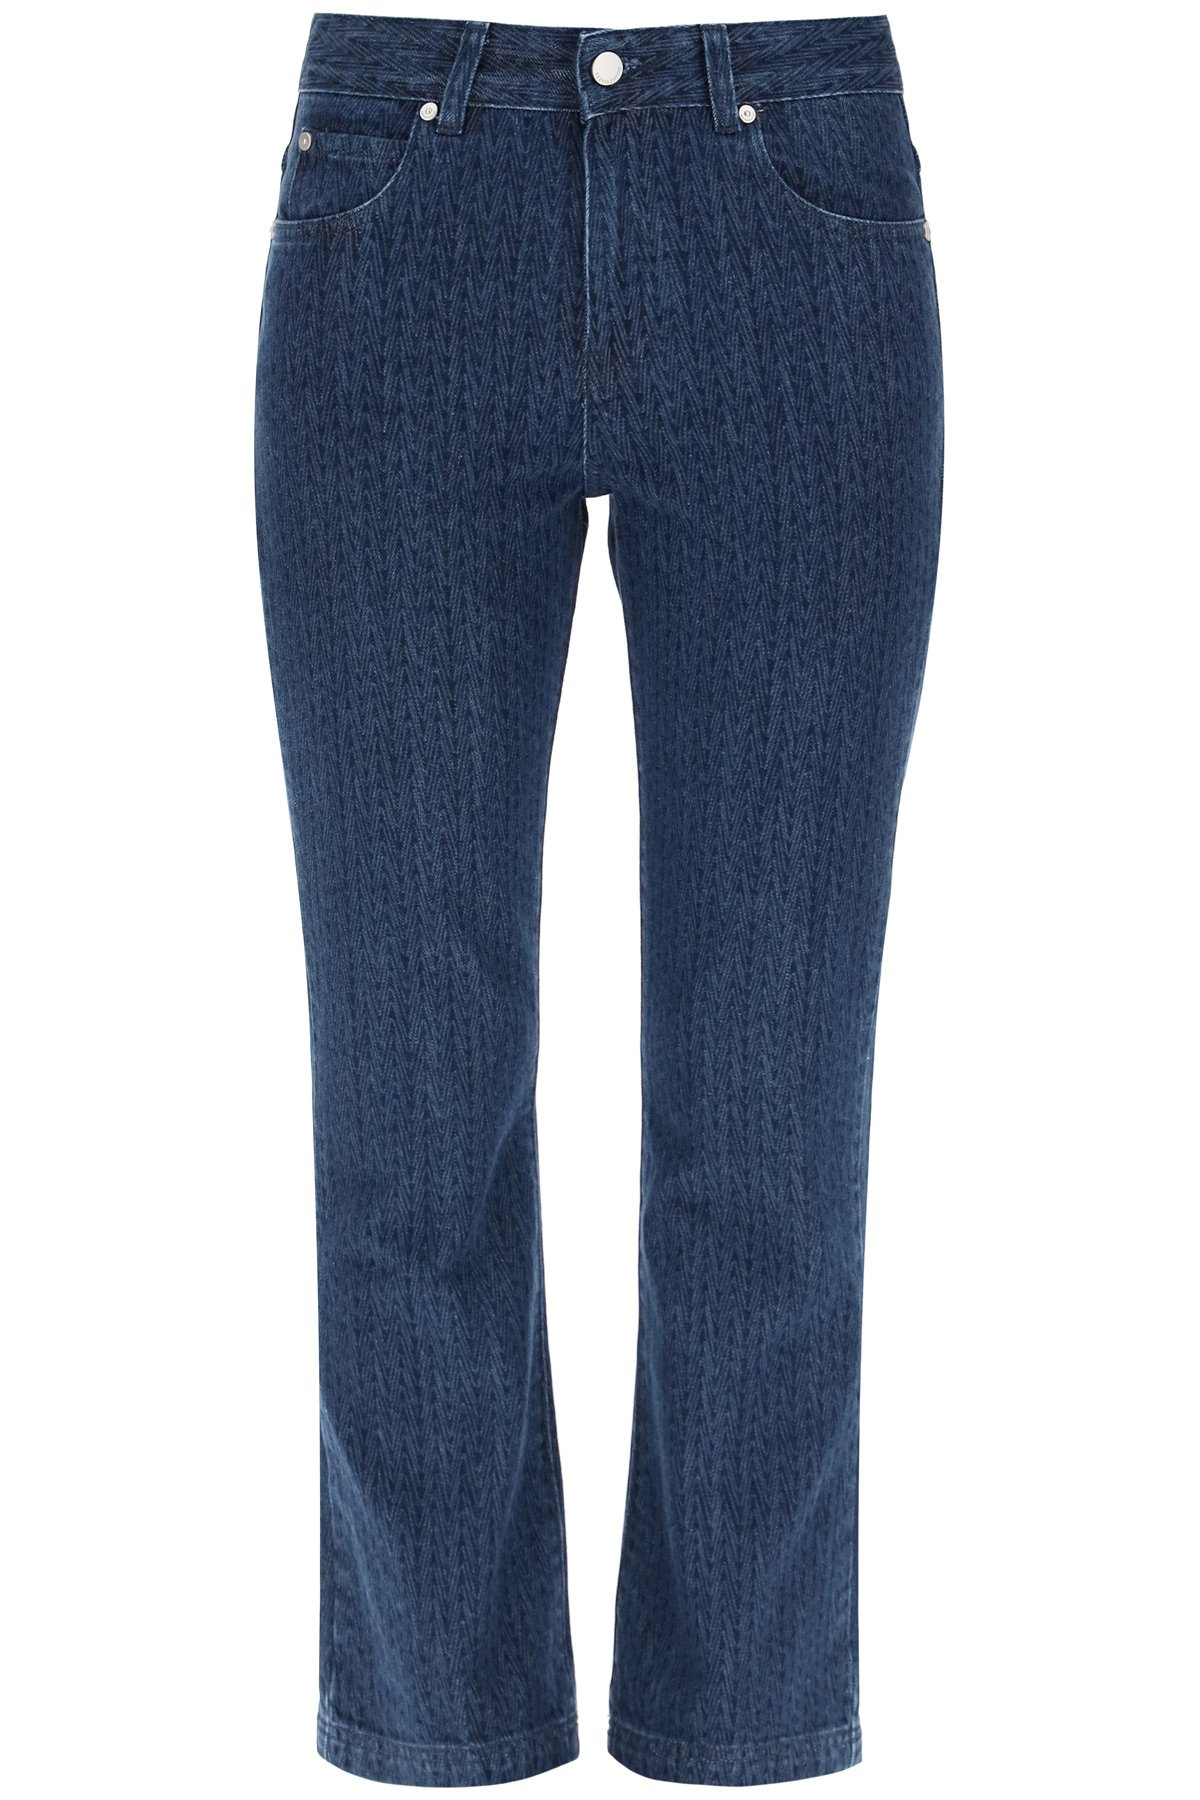 Red valentino jeans cropped stampa laser